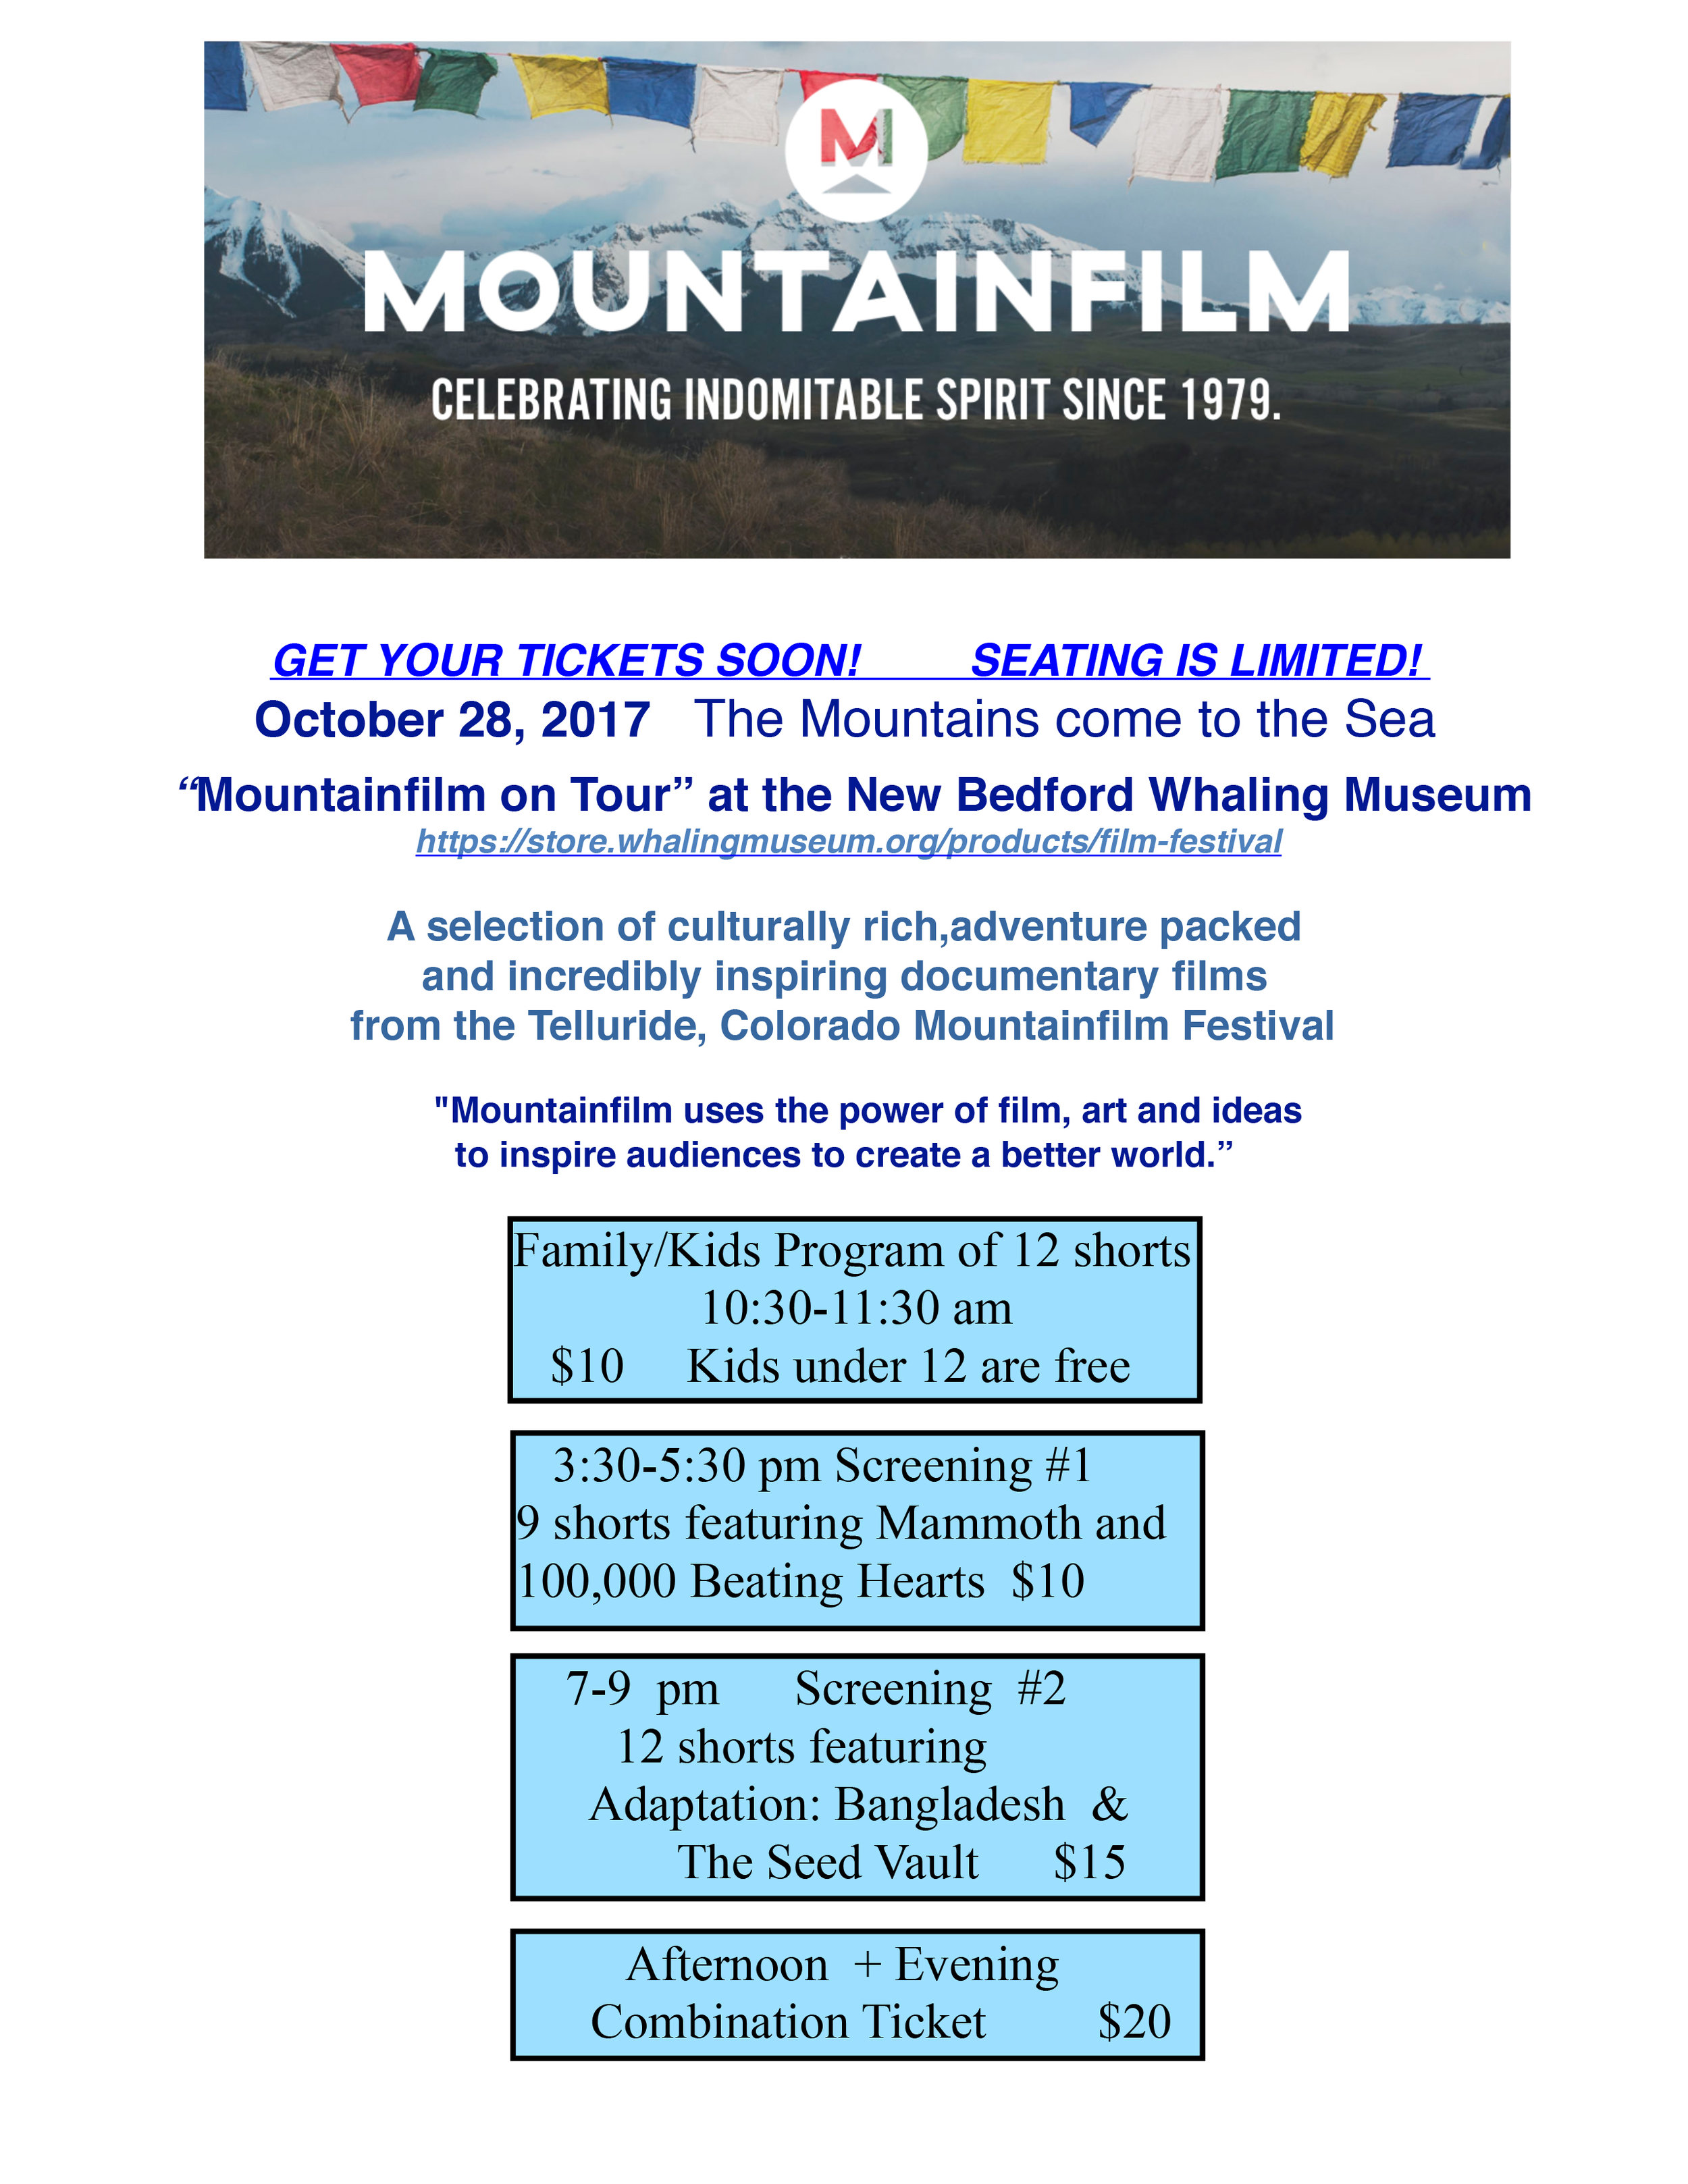 Mtn film Announcement PDF-1.jpg